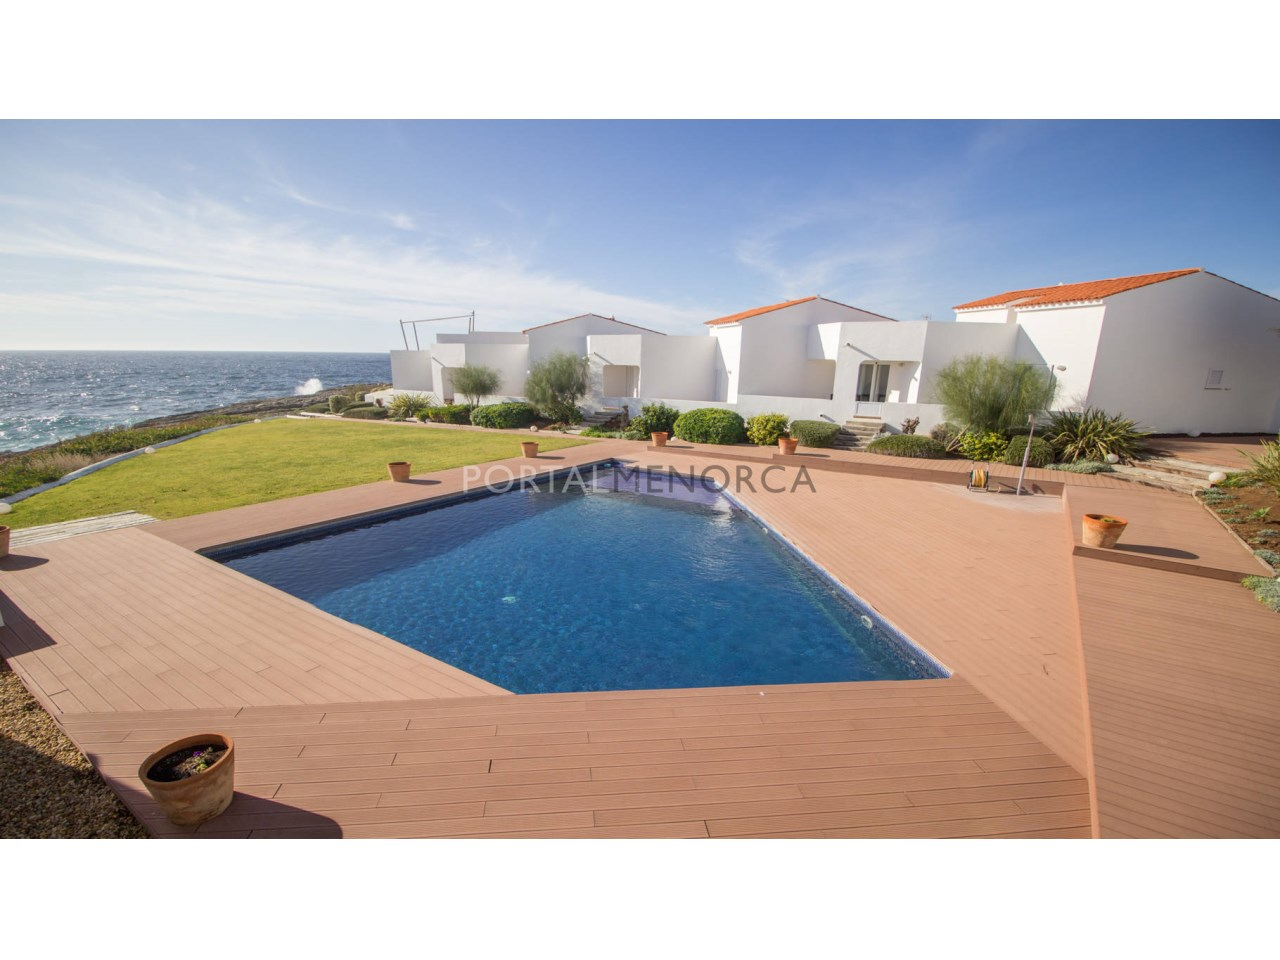 Frontline villa with sea view and comunity pool for sale in Binibeca